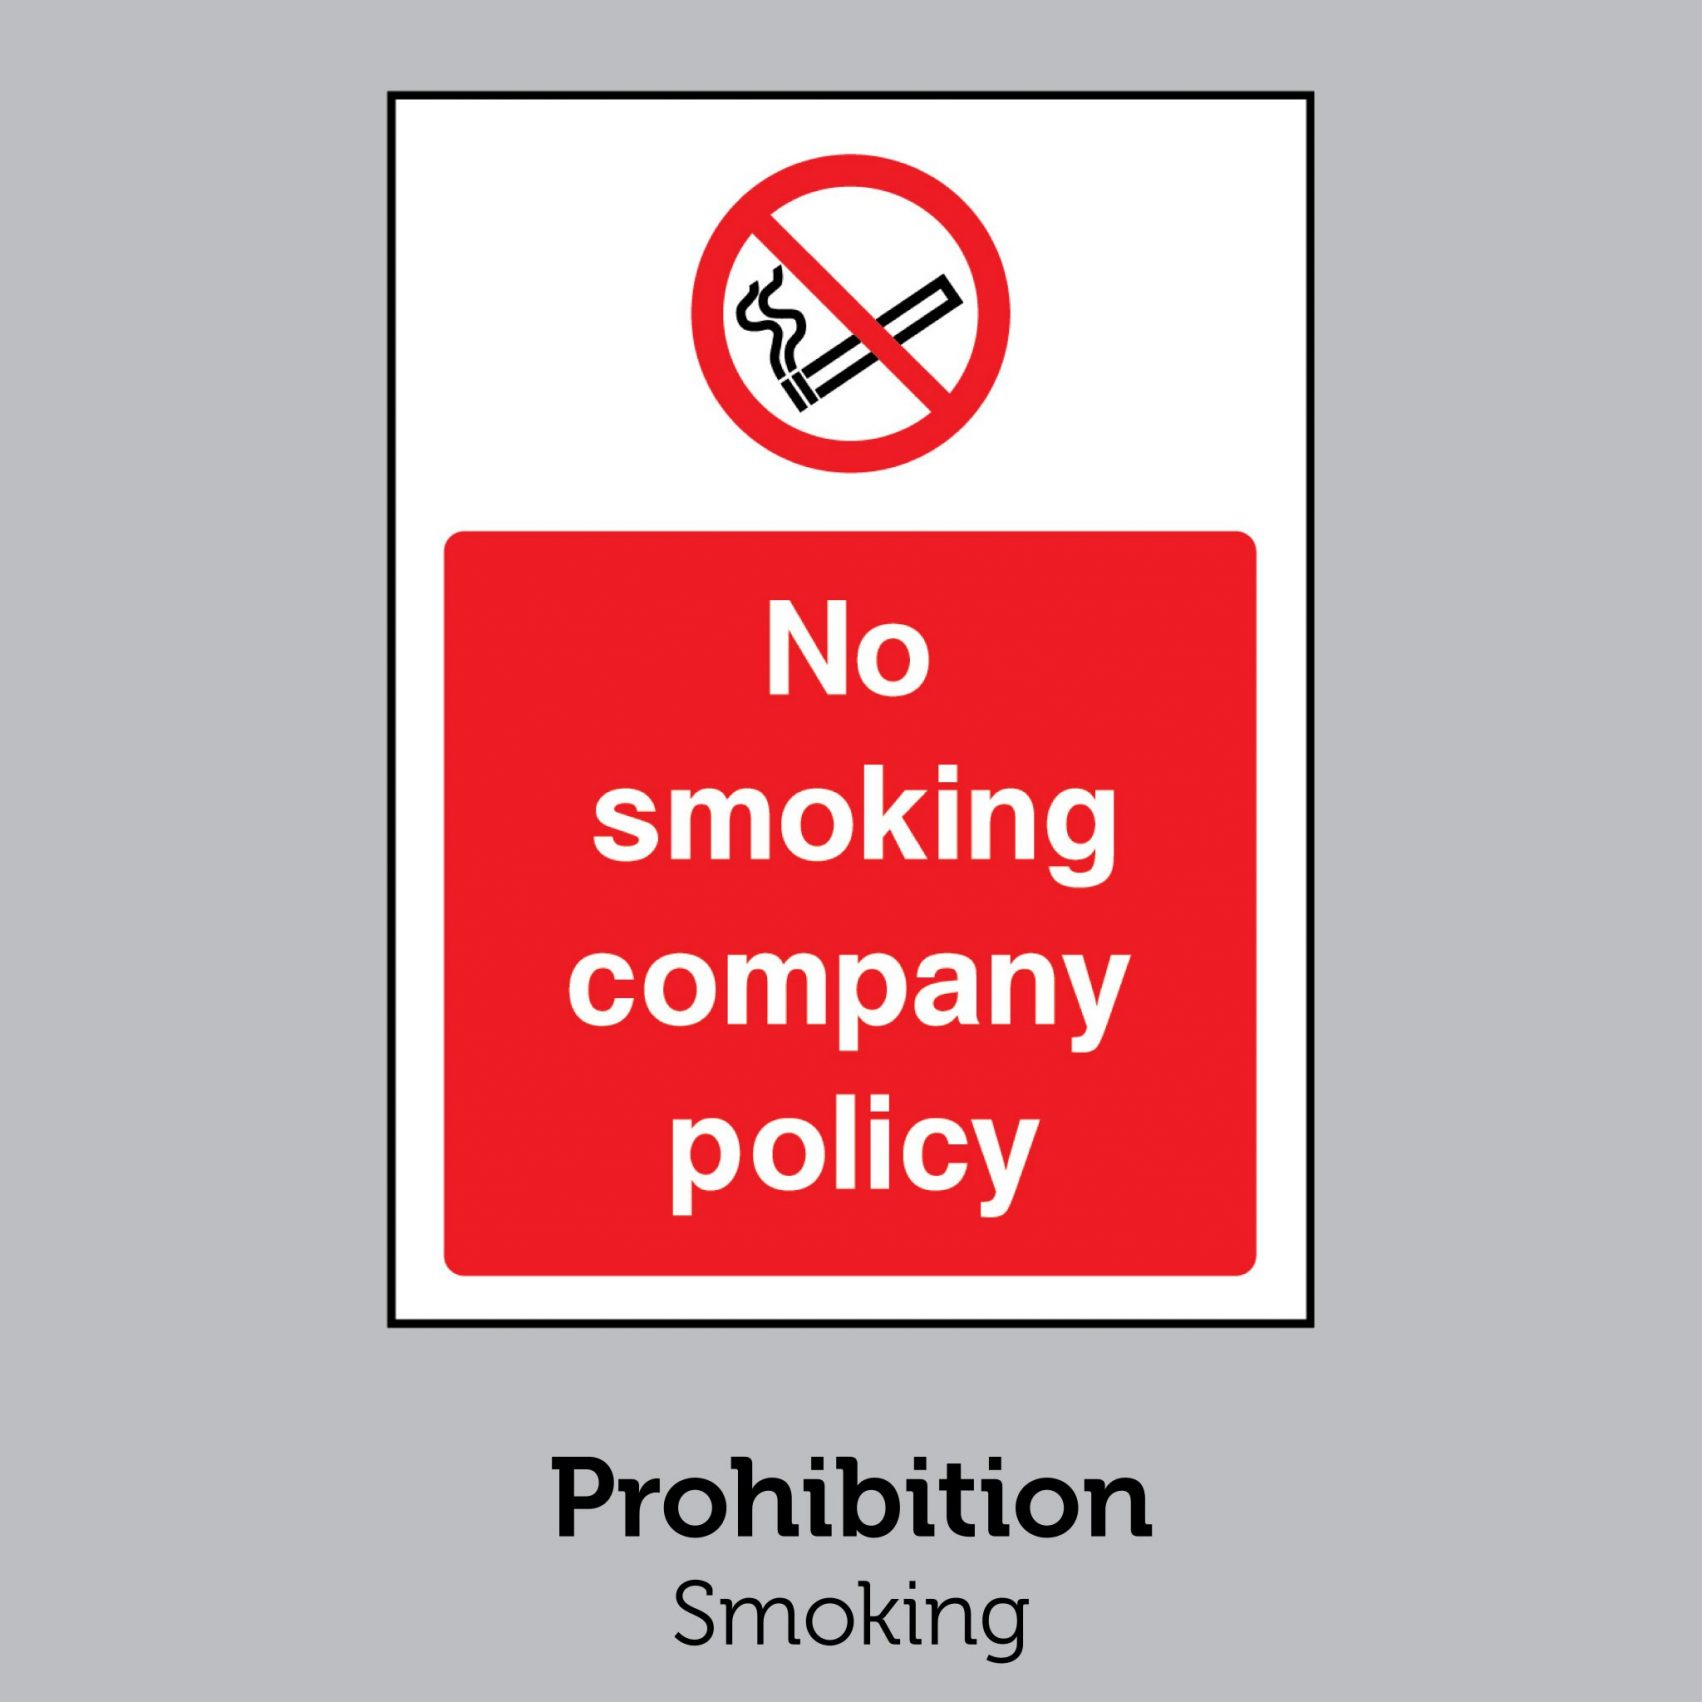 Prohibition - Smoking